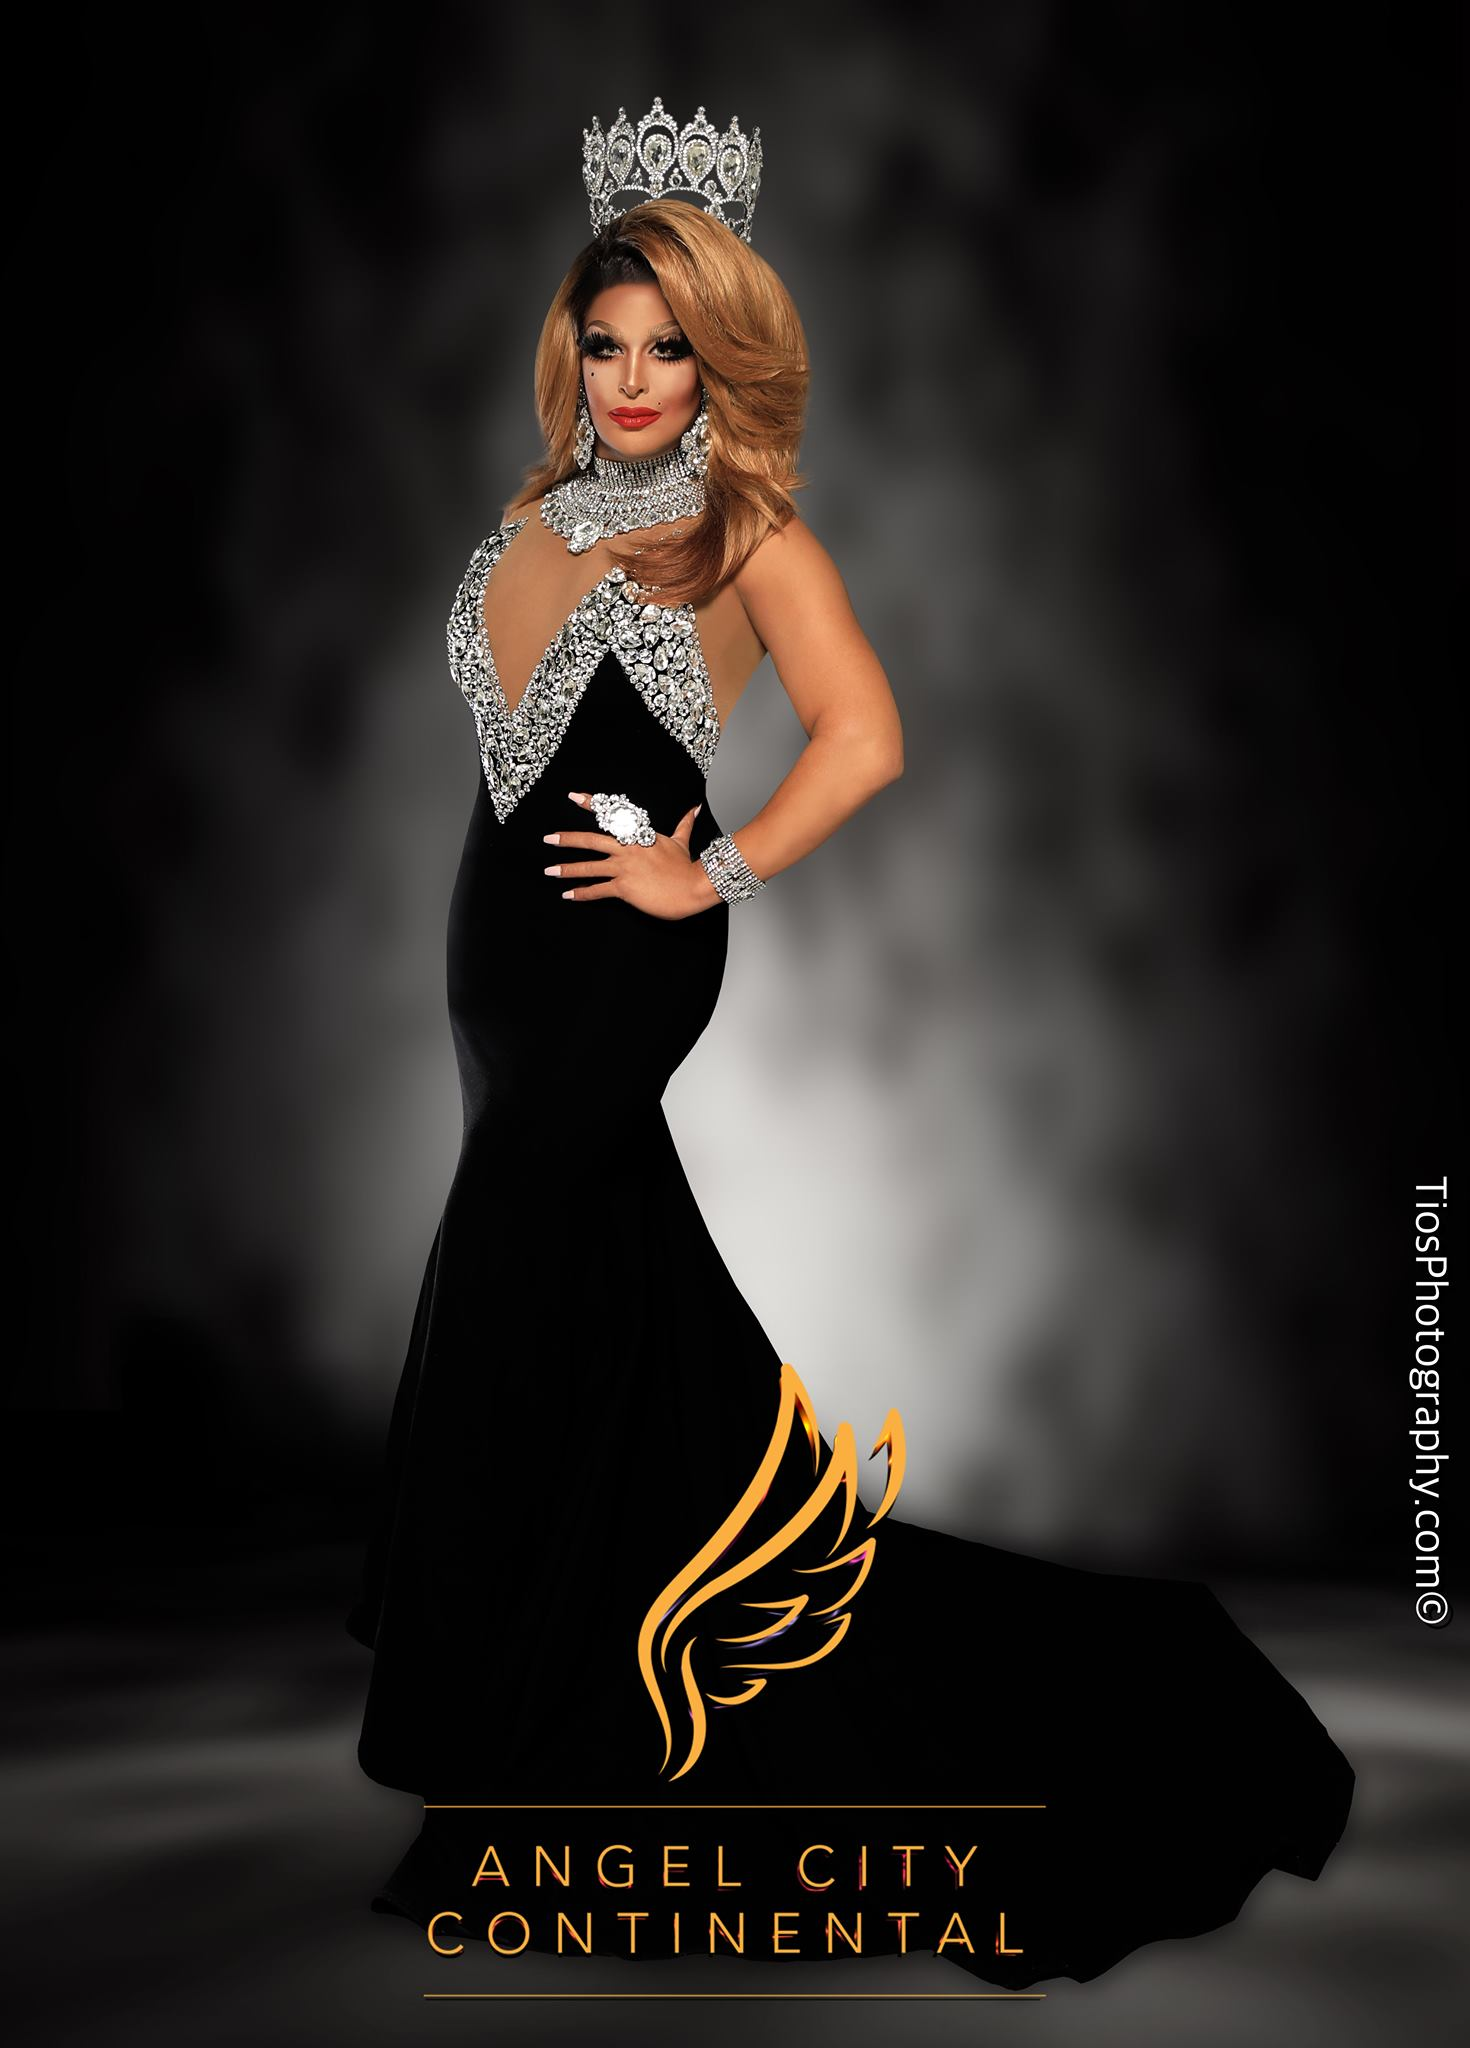 Roxxxy Andrews - Photo by Tios Photography